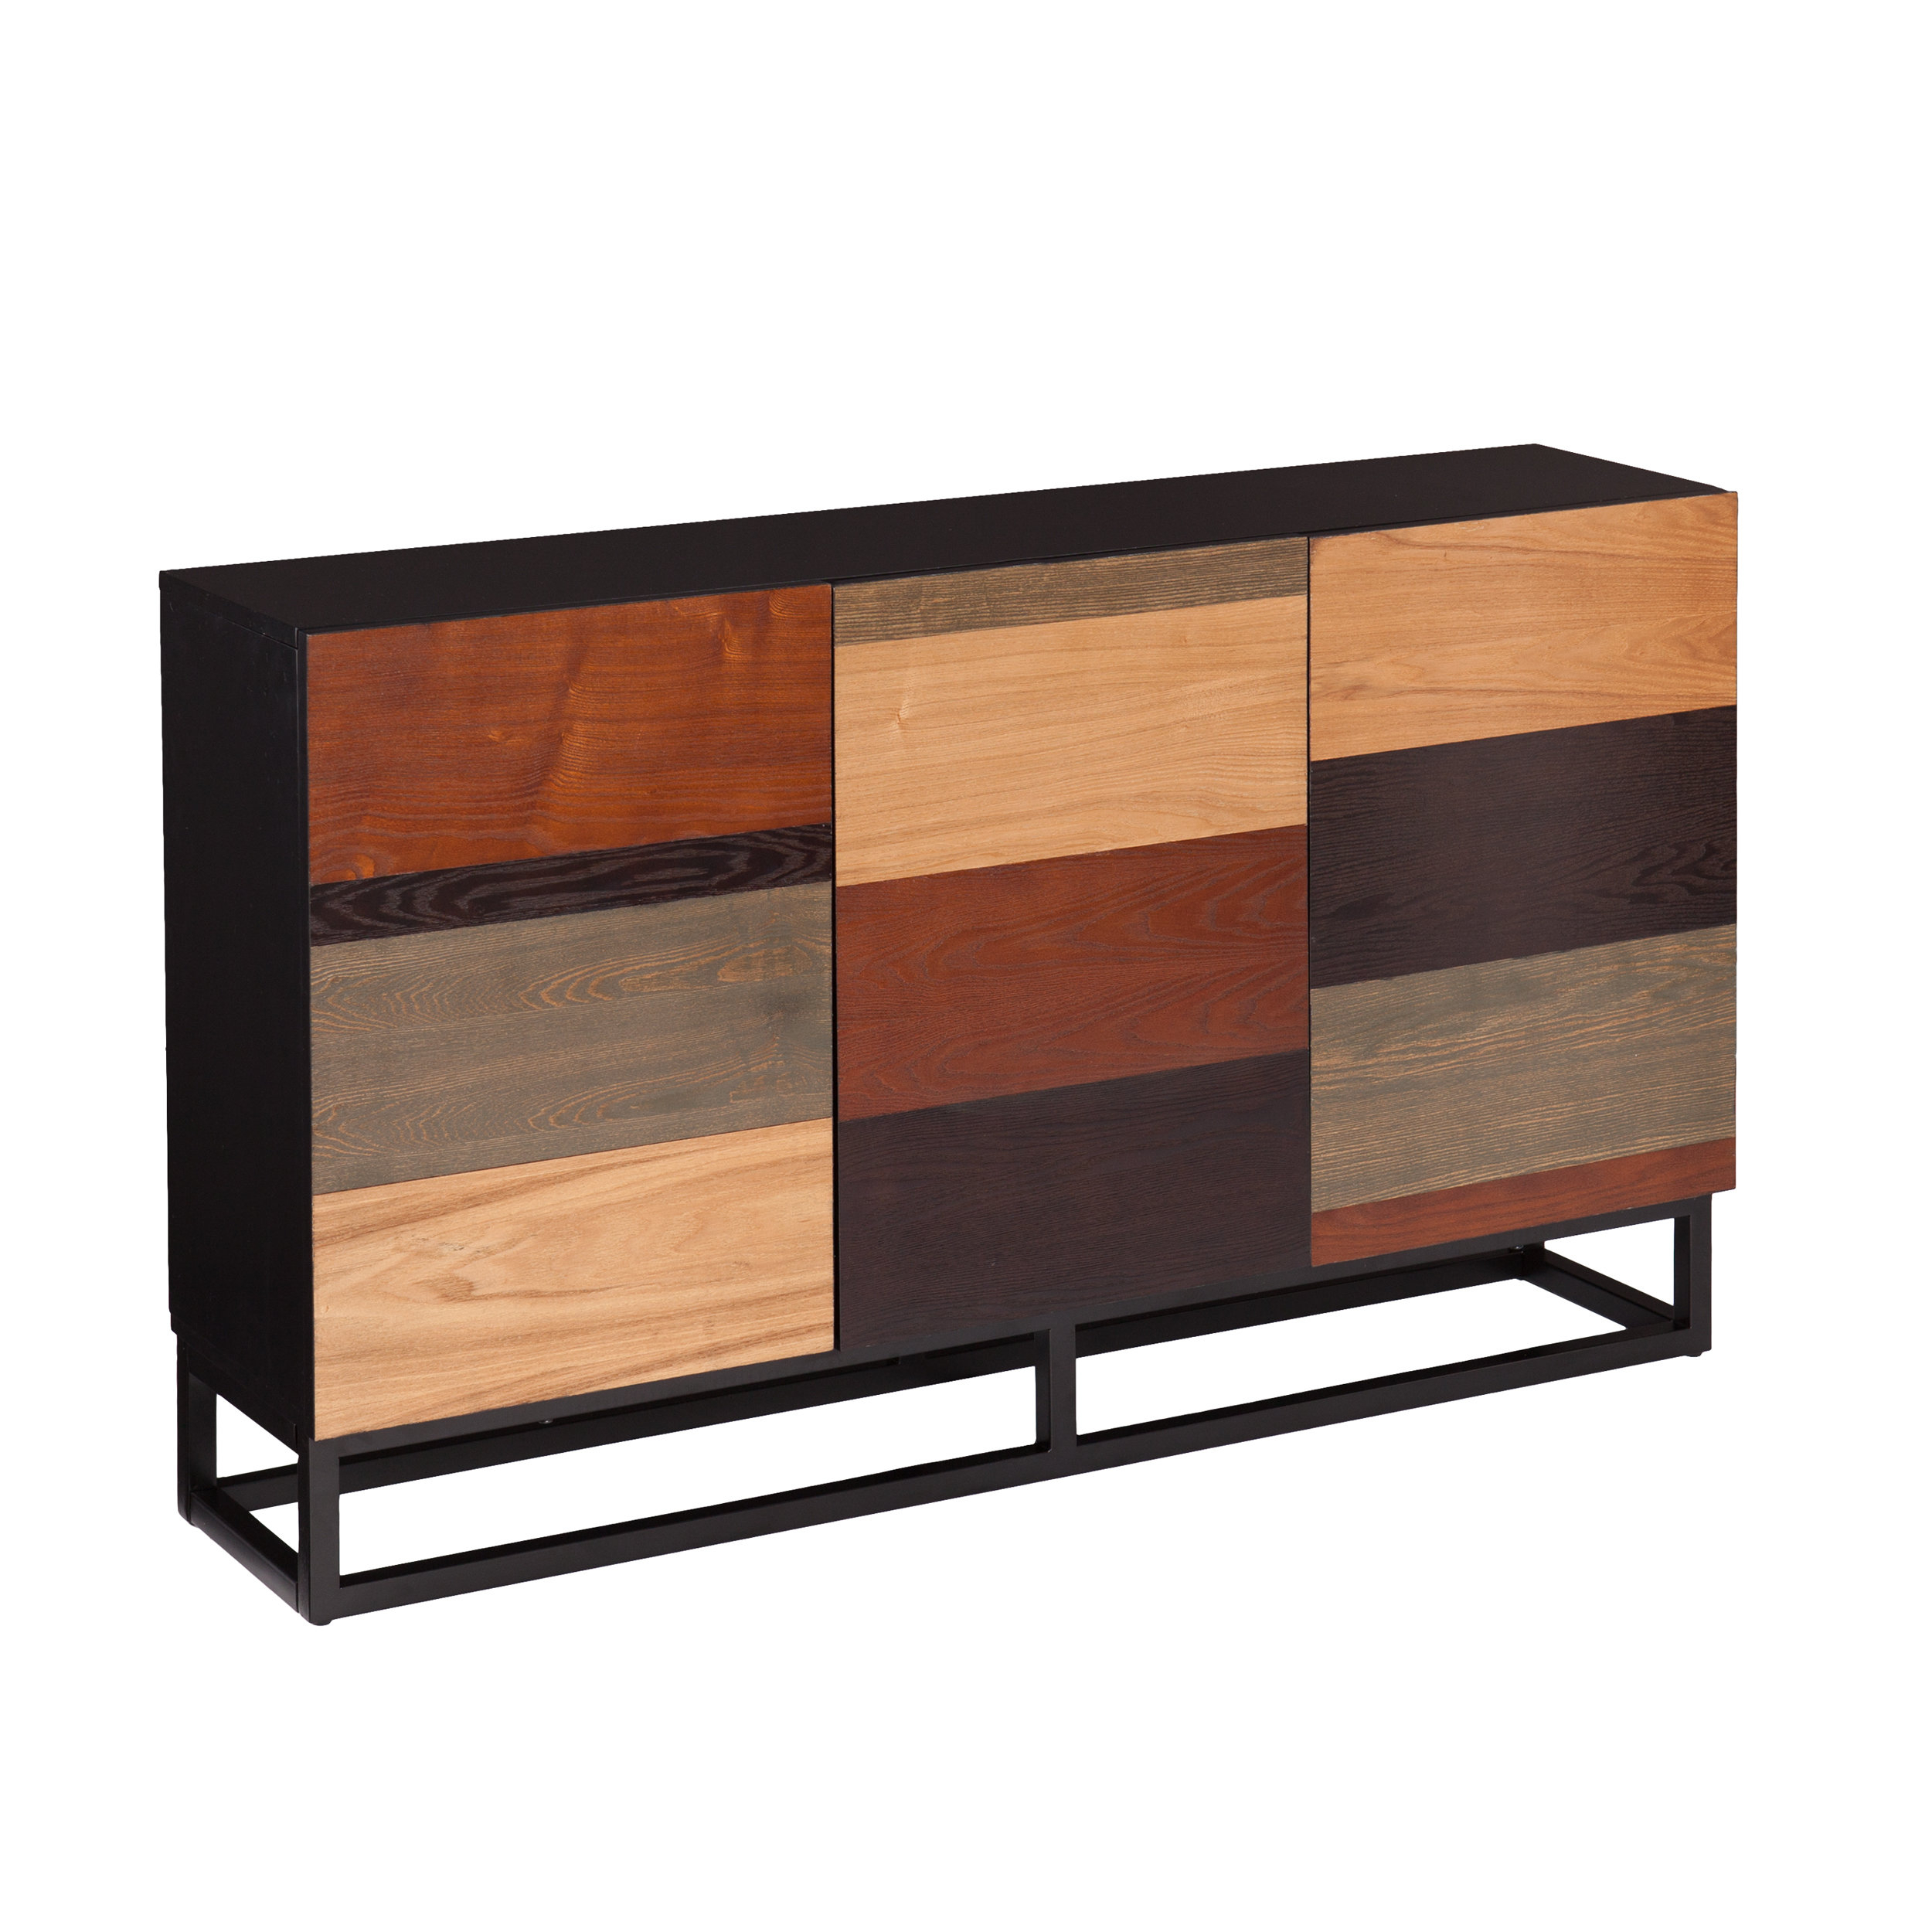 Remington Sideboard With Newest Remington Sideboards (#11 of 20)